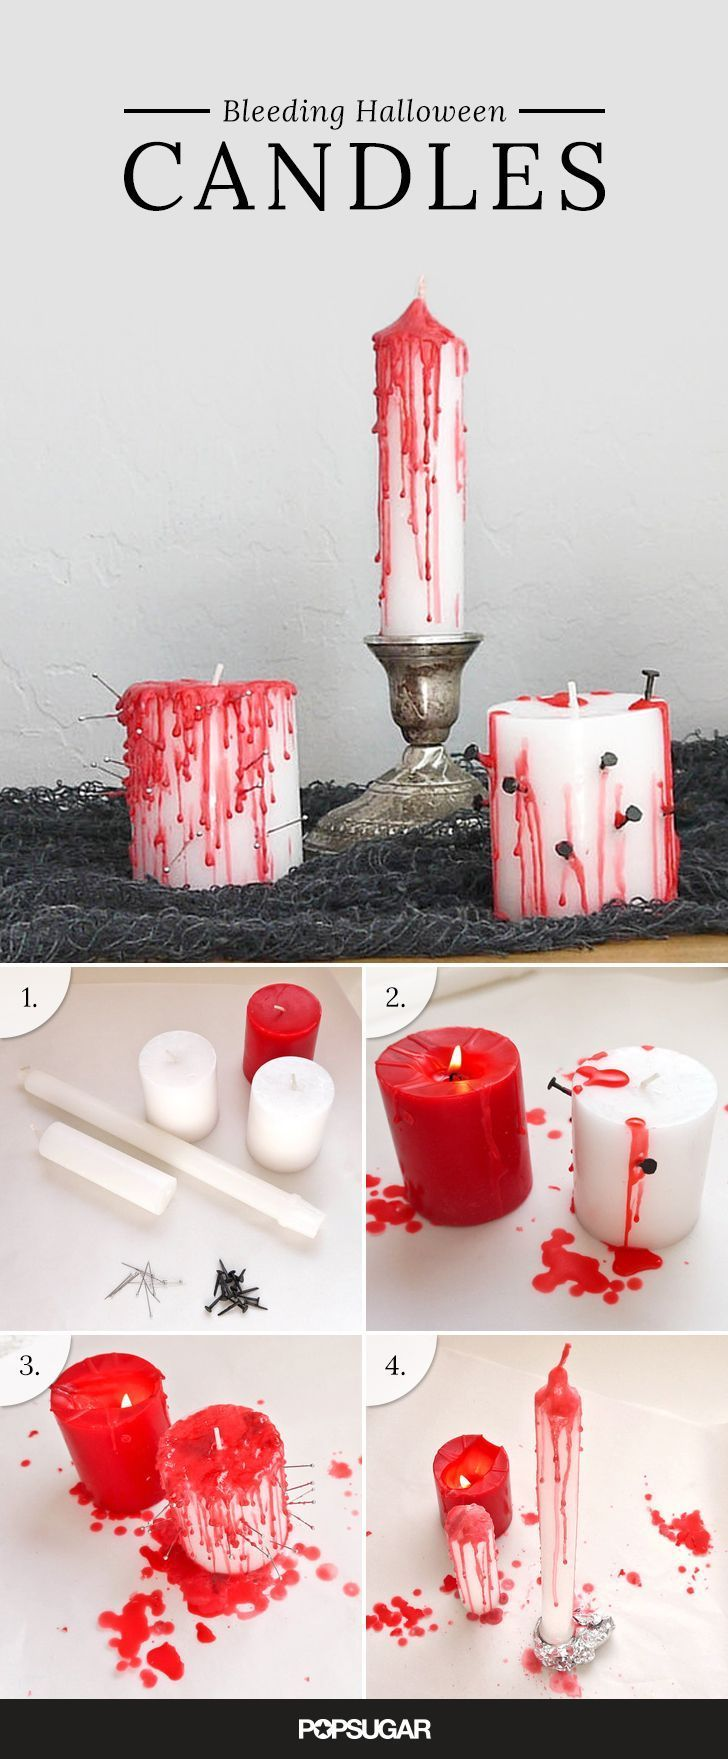 Gruseldeko für Halloween - ganz einfach mit Ikea Kerzen selber machen. Transform dollar store candles into bleeding votives that really set the tone for an eerie evening of Halloween fun.